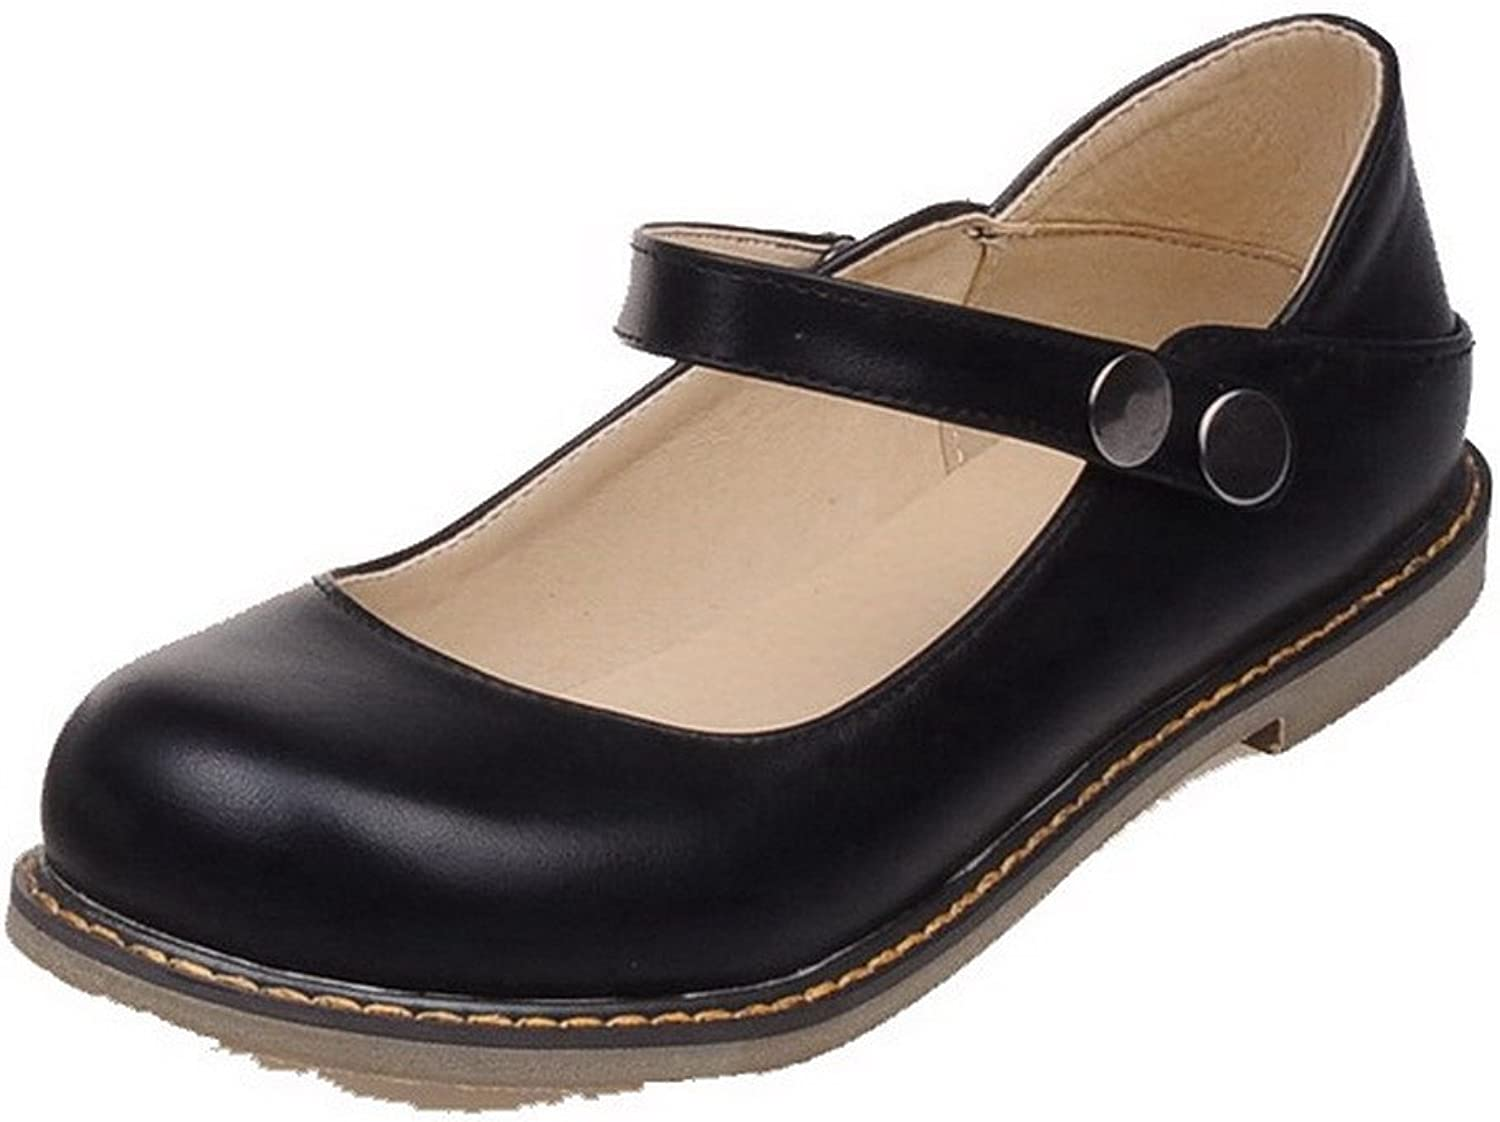 WeiPoot Women's Solid PU Low-Heels Button Round-Toe Pumps-shoes